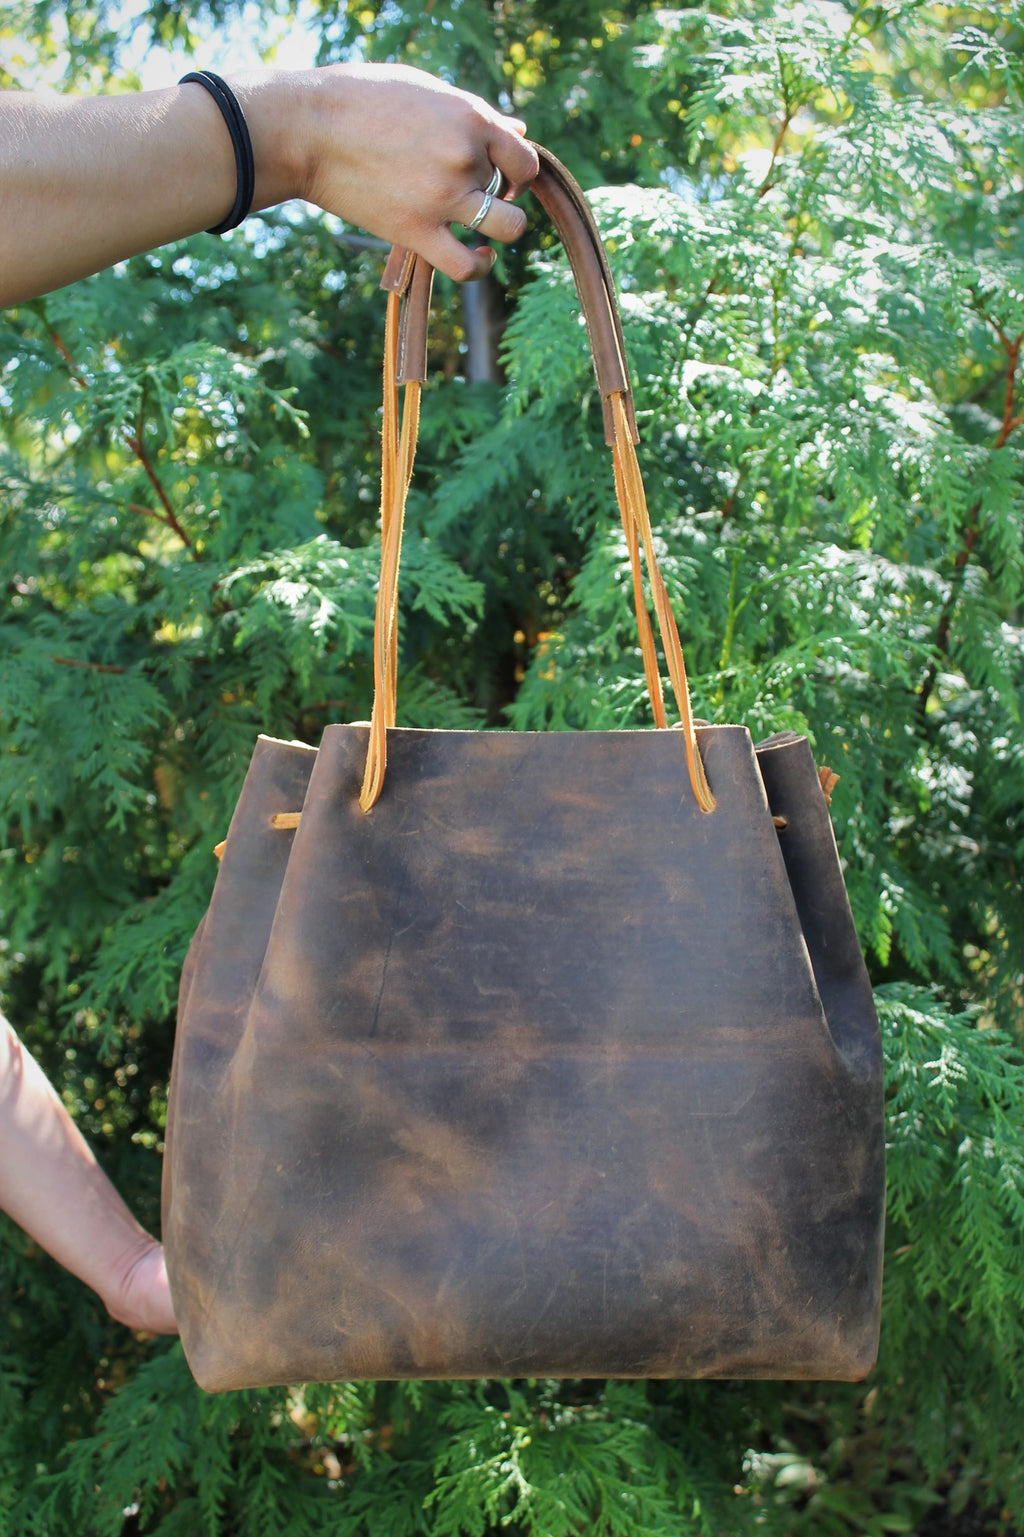 Distressed Brown Leather Tote Bag - available in Sable, Saddle Brown, Distressed Brown, Chocolate Brown or Burgundy